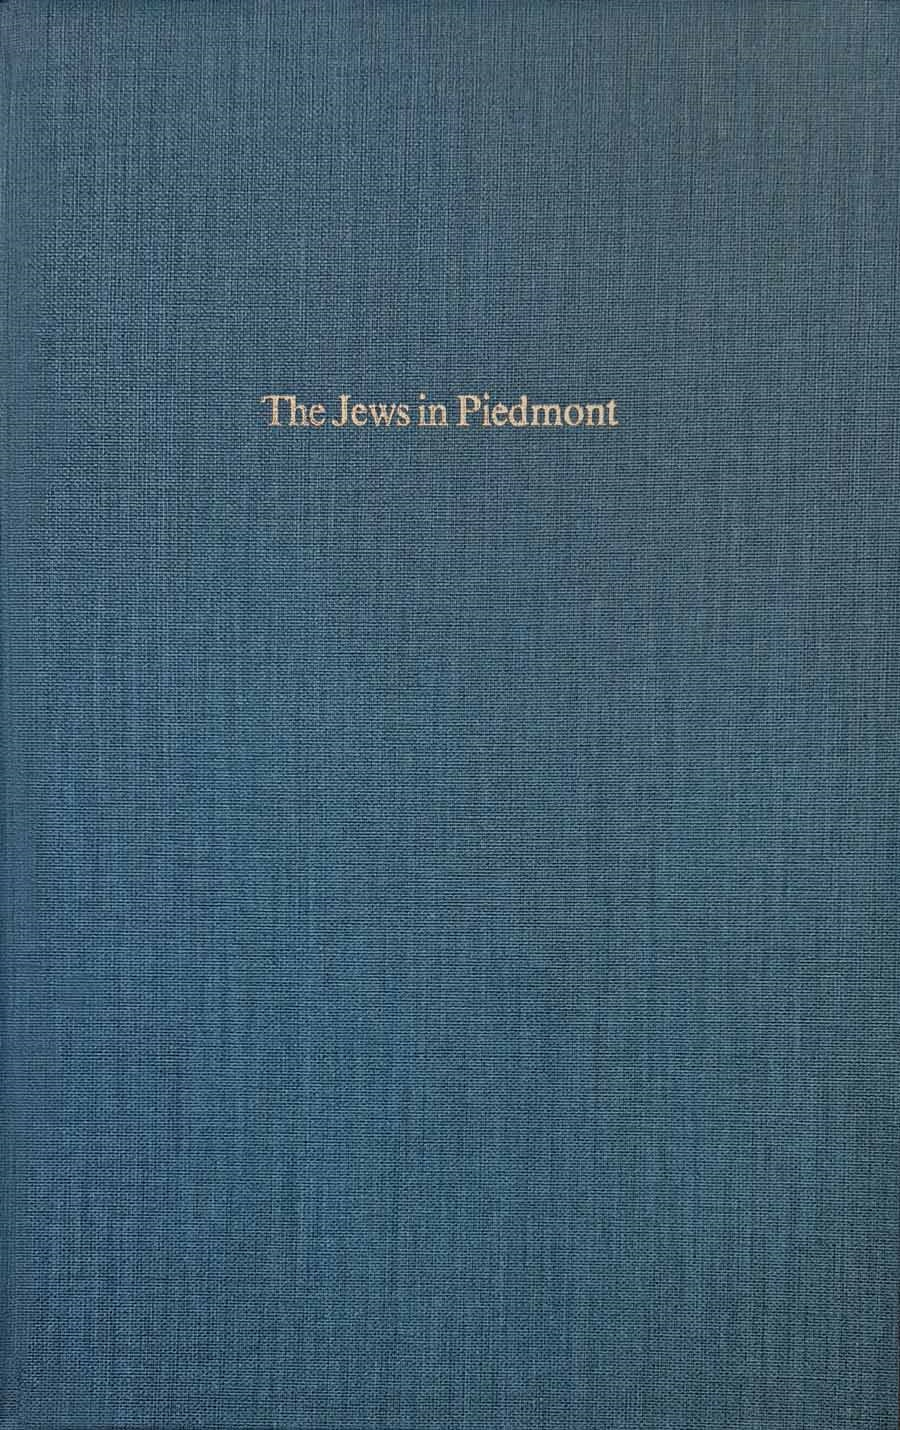 The Jews in Piedmont